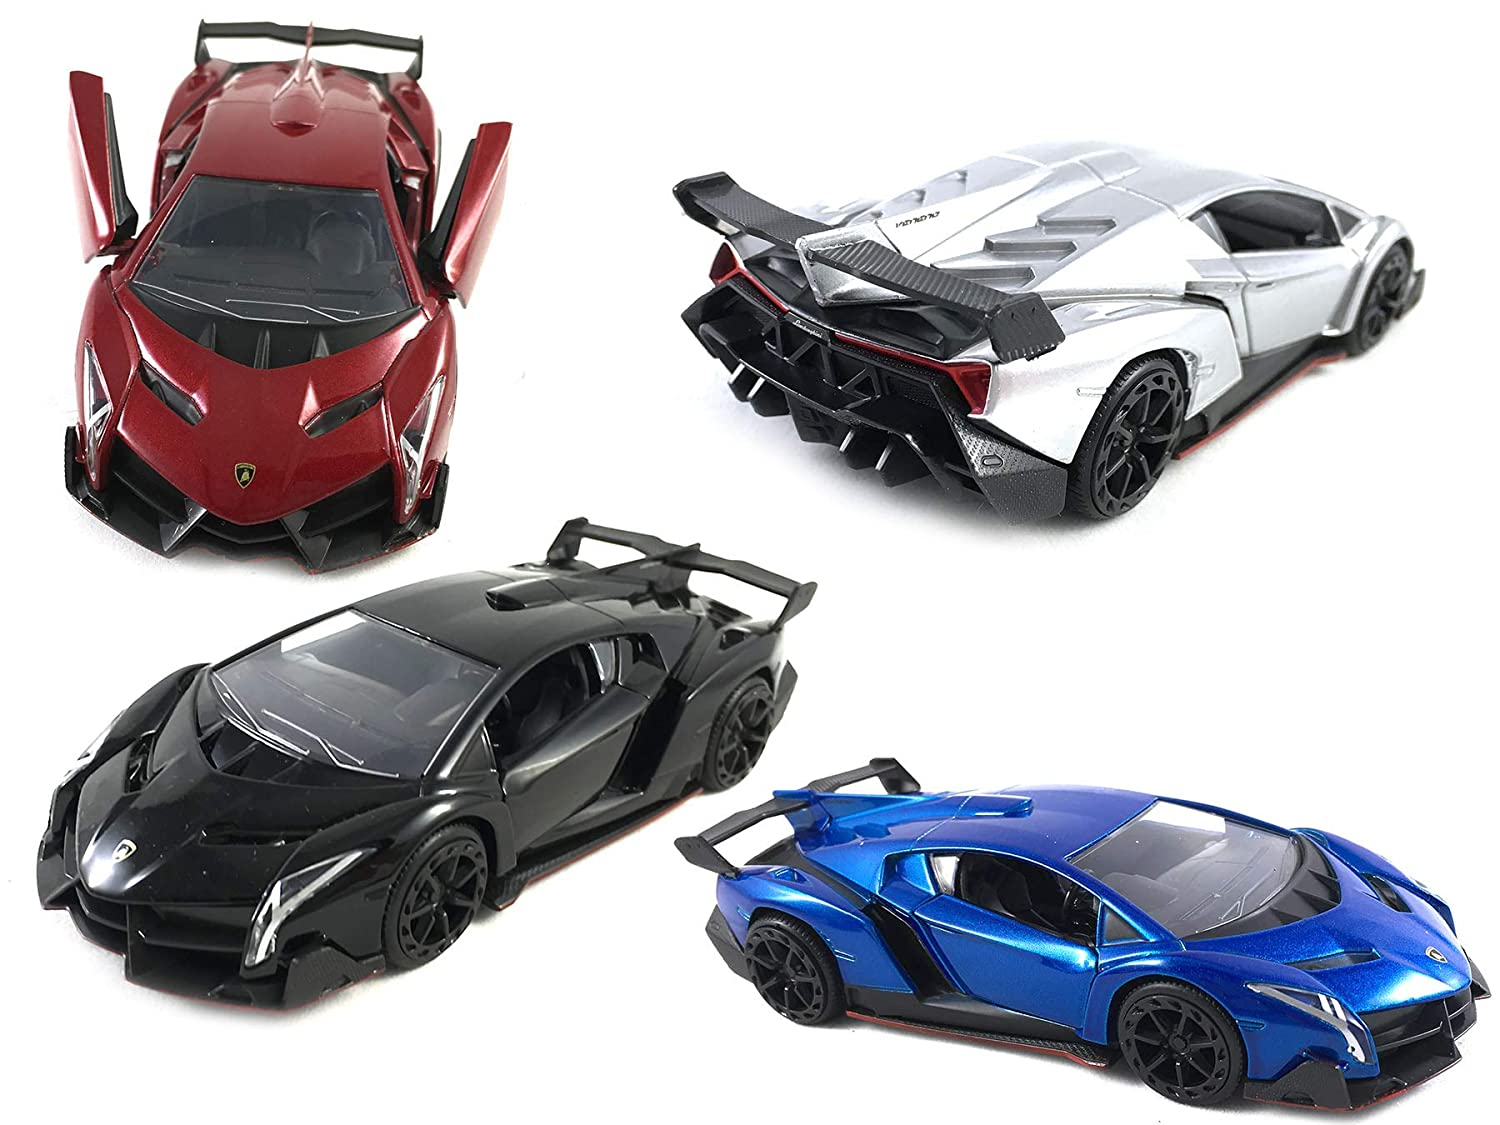 HCK Set of 4 2017 Lambo Veneno , Pull Back Toy Cars 132 Scale (Red, Black,  Silver, Blue)